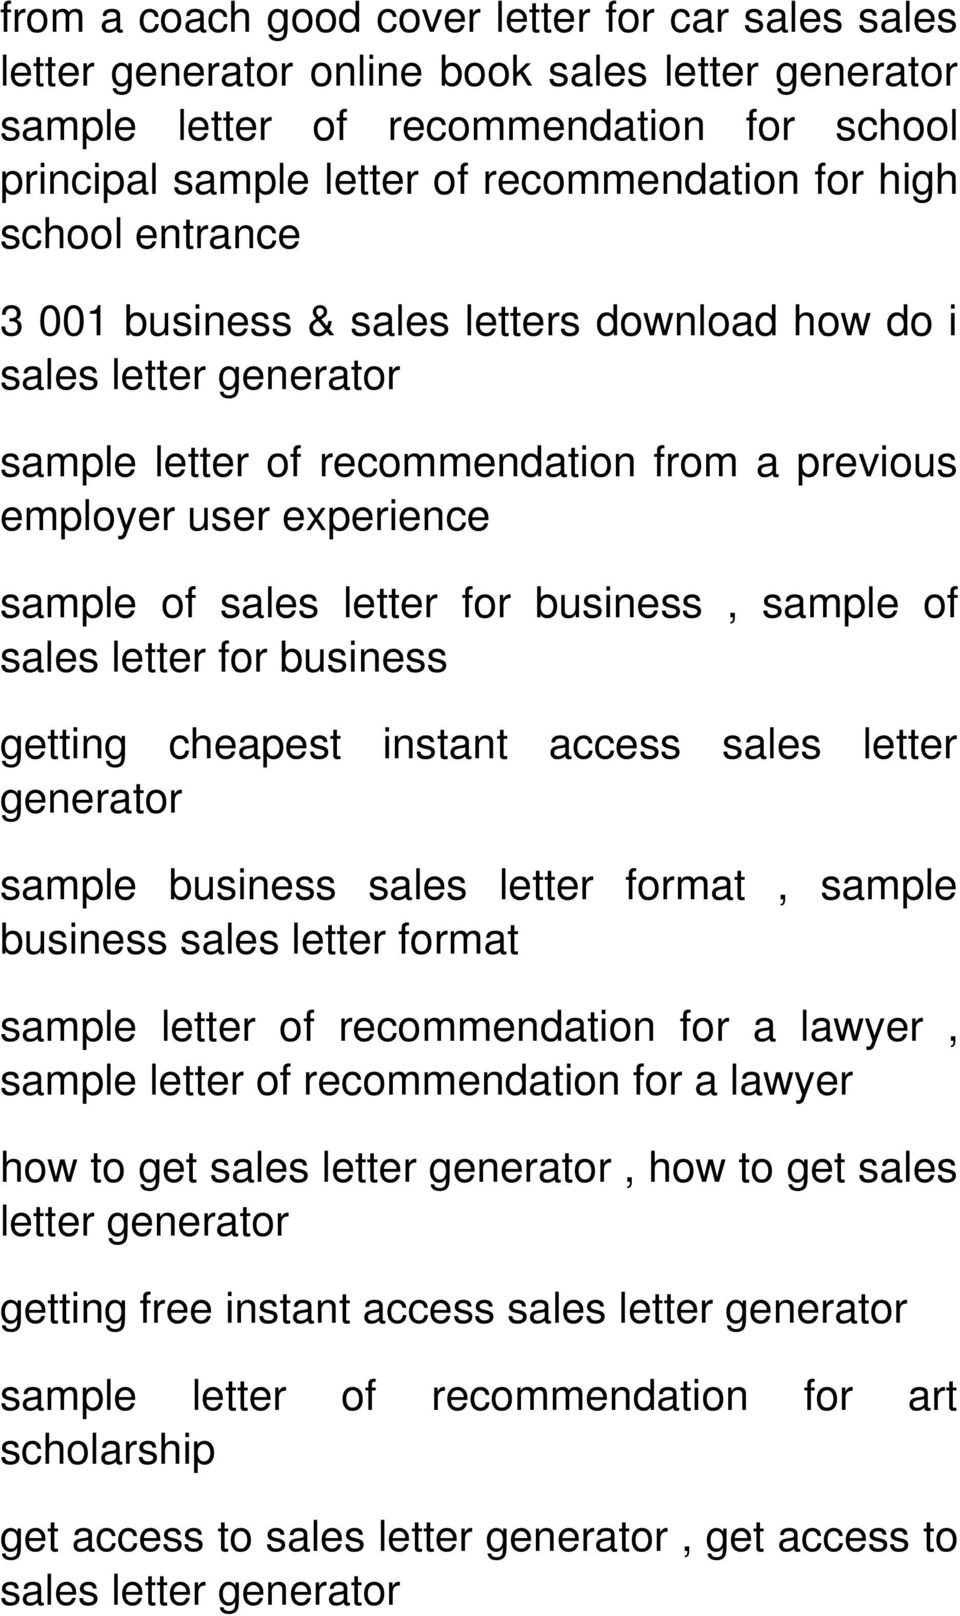 business getting cheapest instant access sales letter generator sample business sales letter format, sample business sales letter format sample letter of recommendation for a